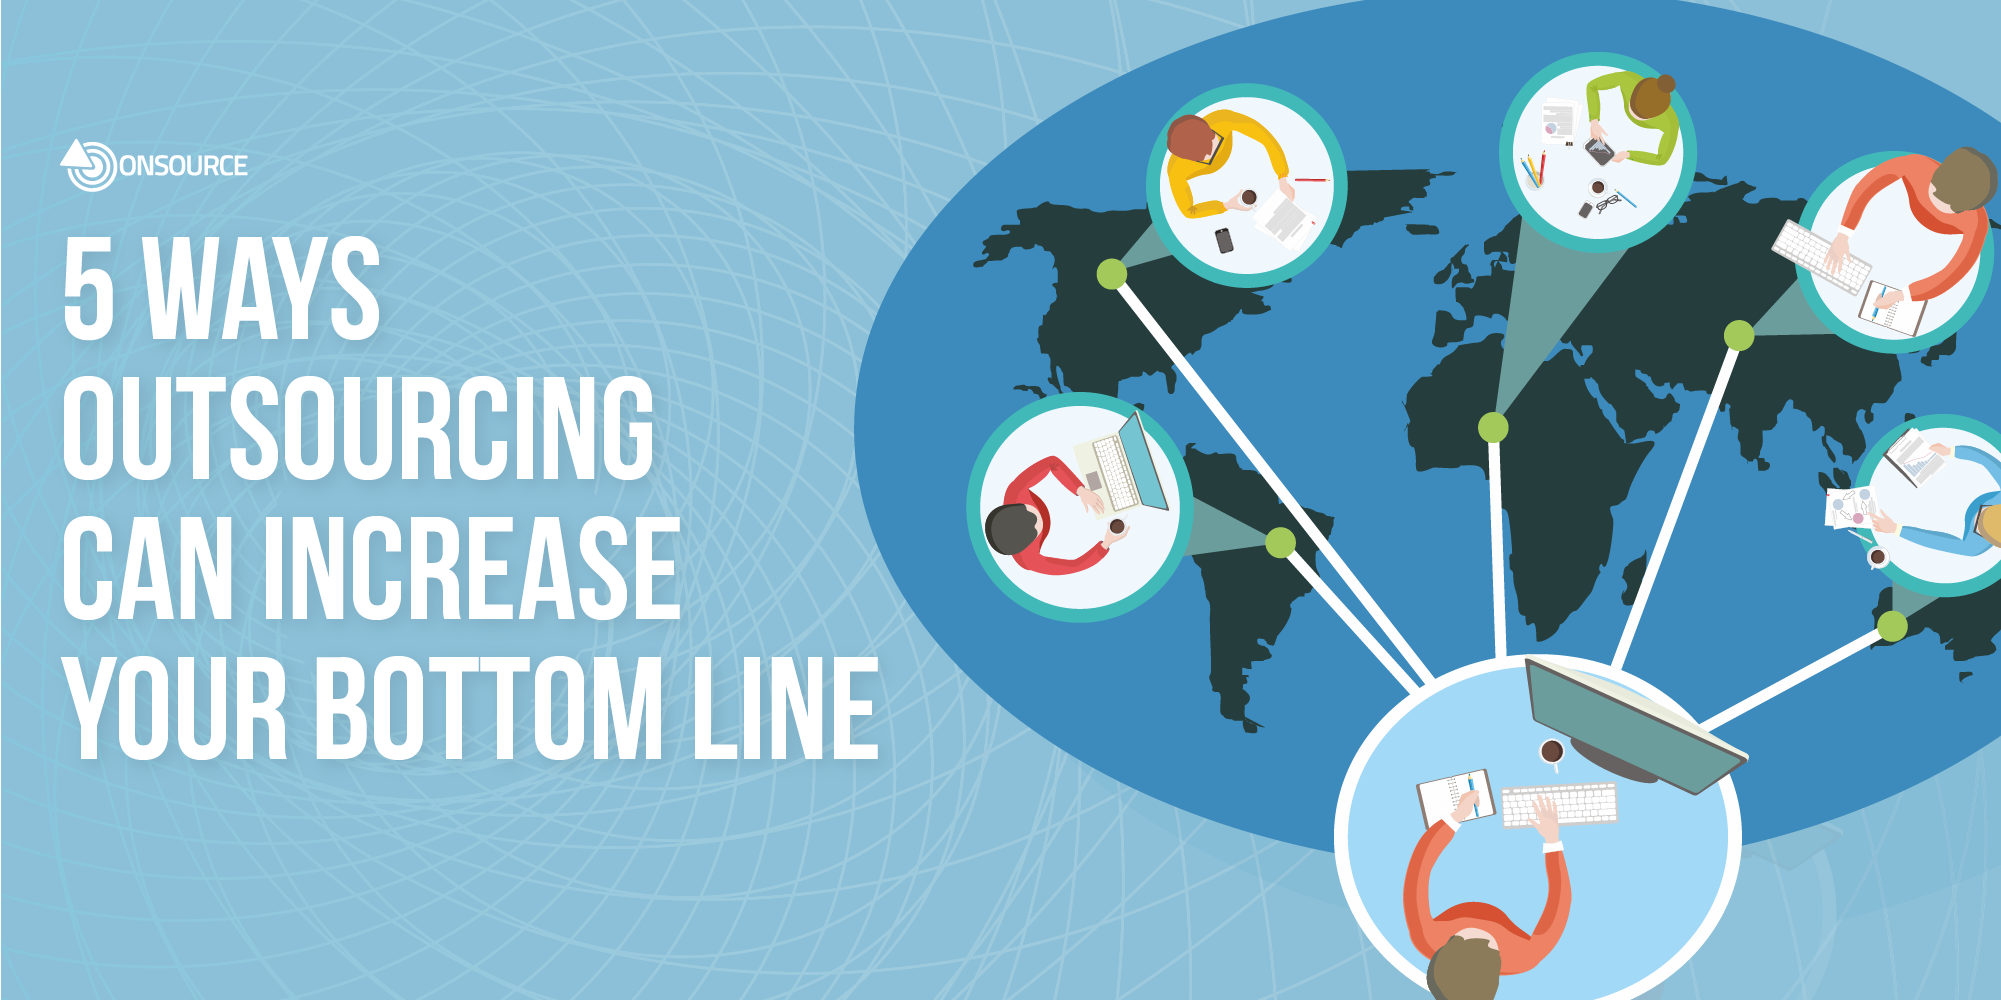 5 ways outsourcing can increase your bottom line